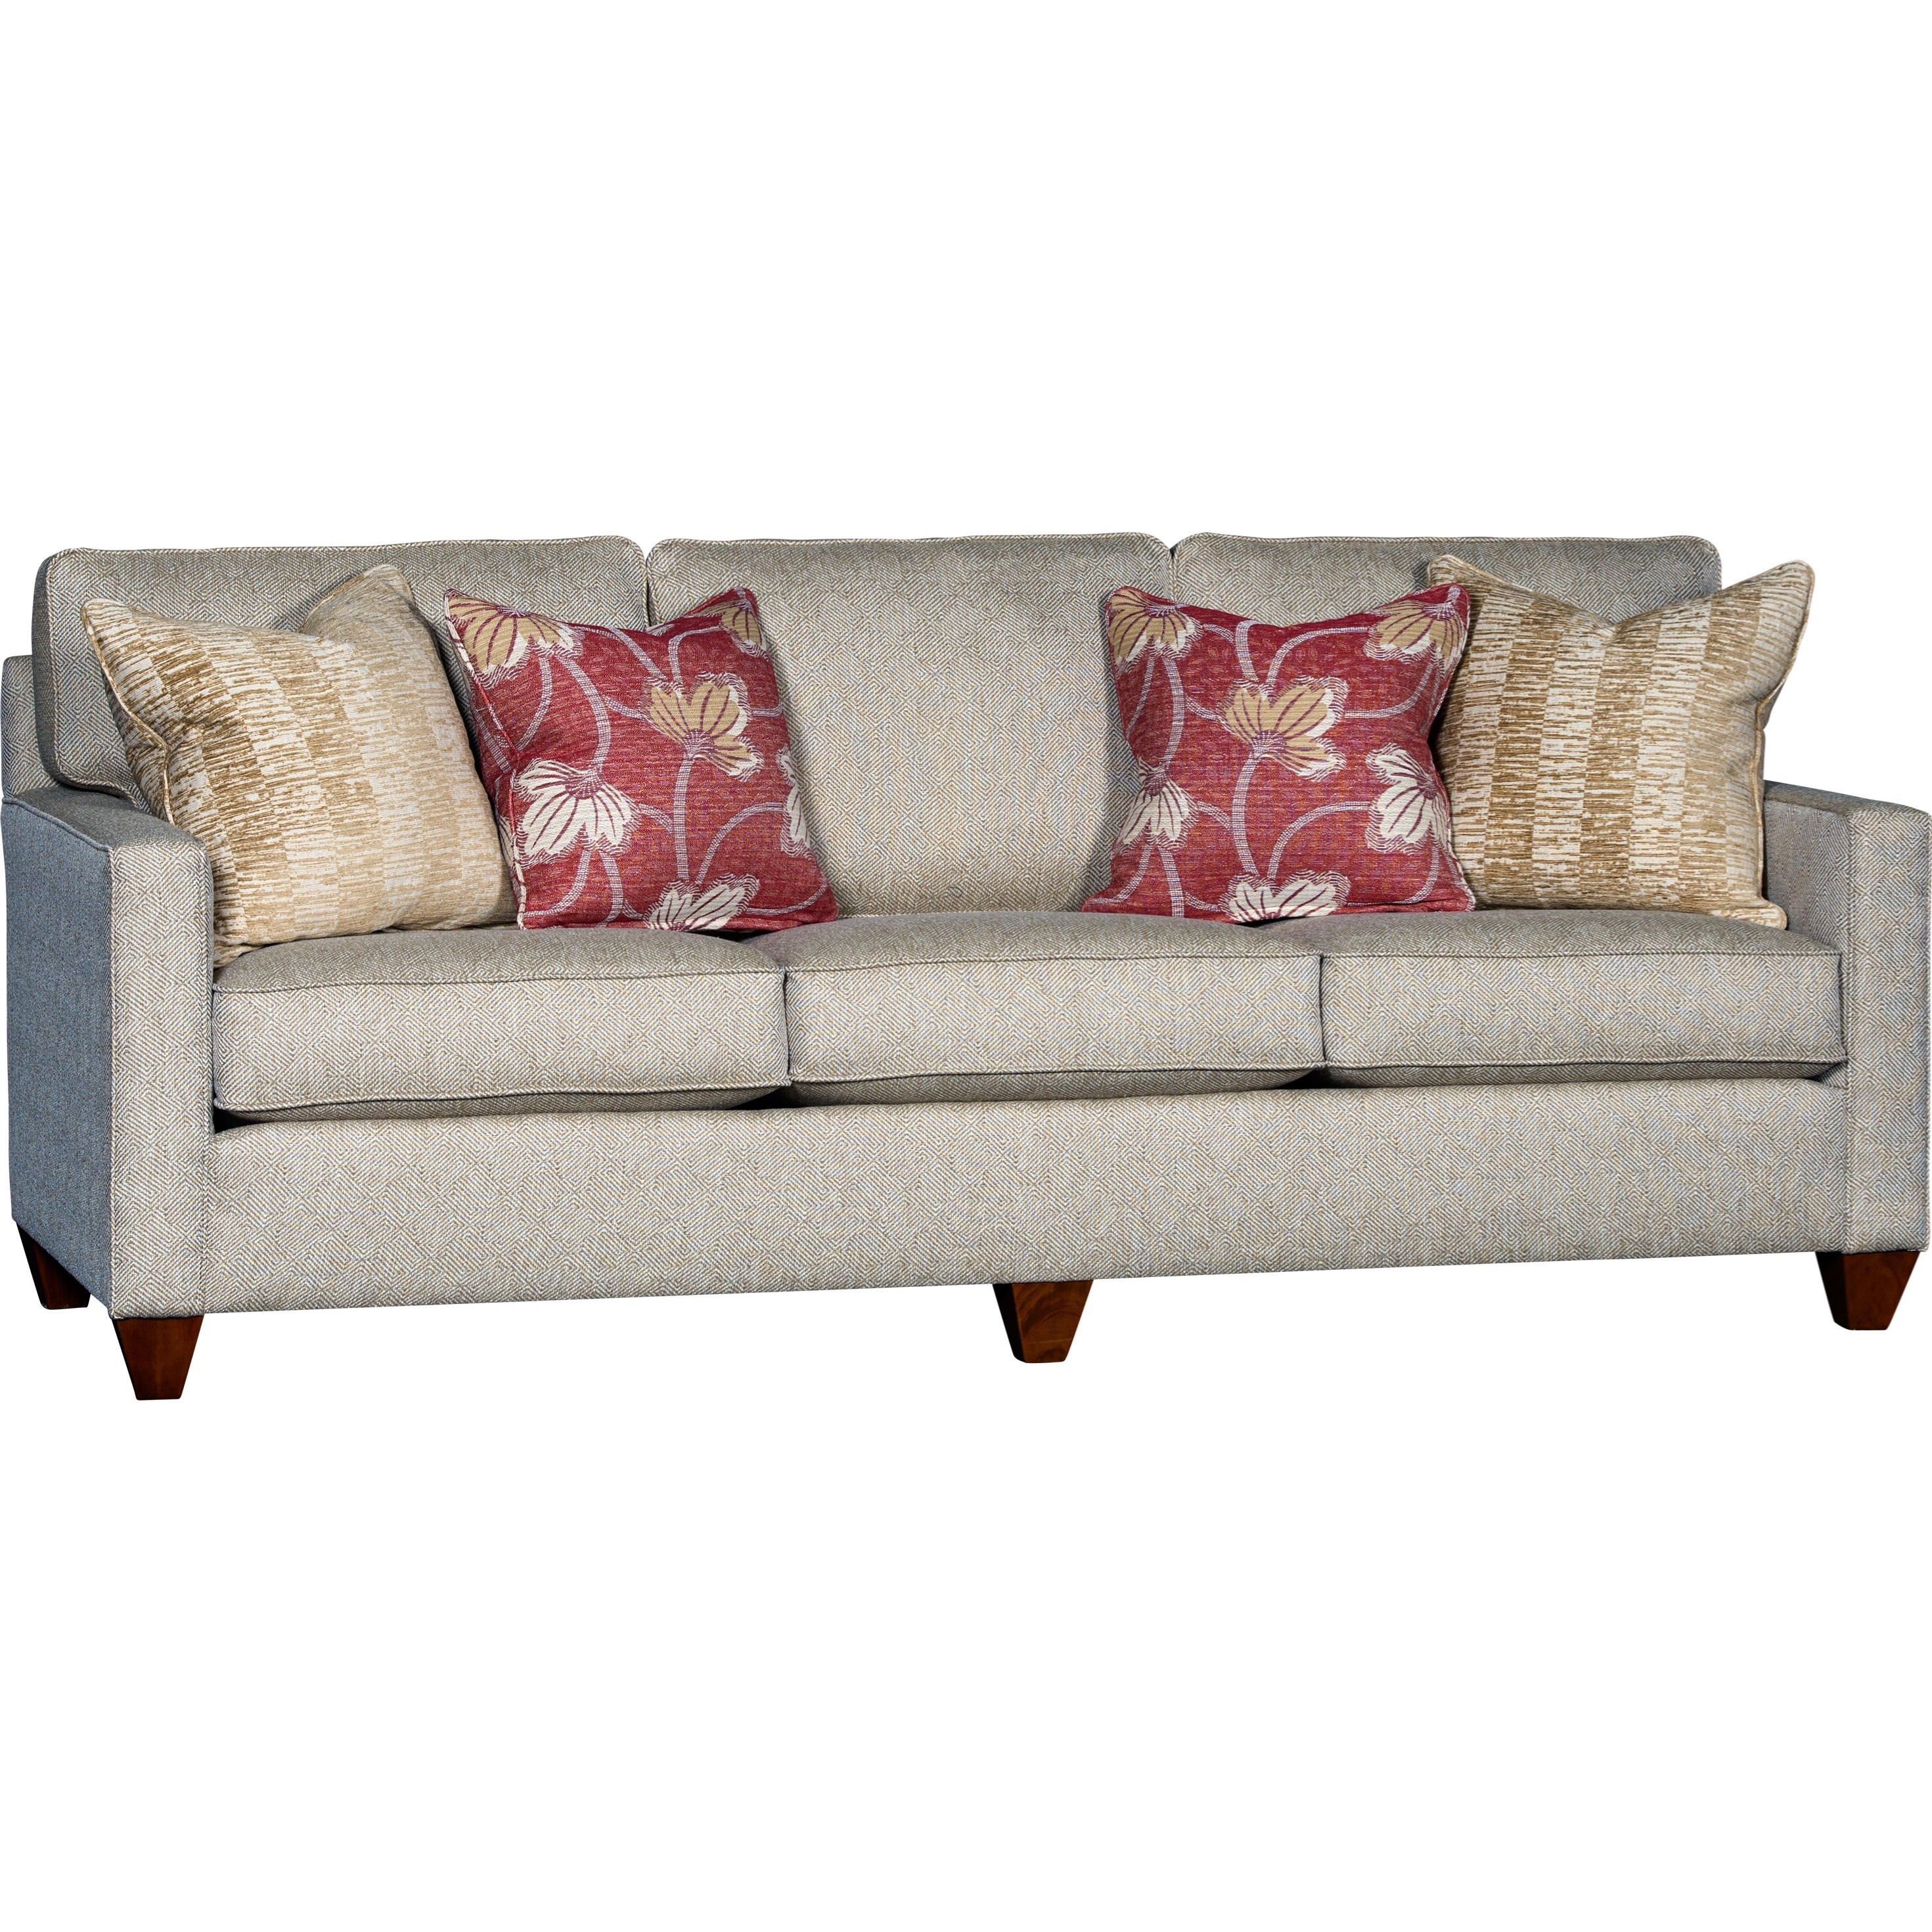 3830 Sofa by Mayo at Wilcox Furniture